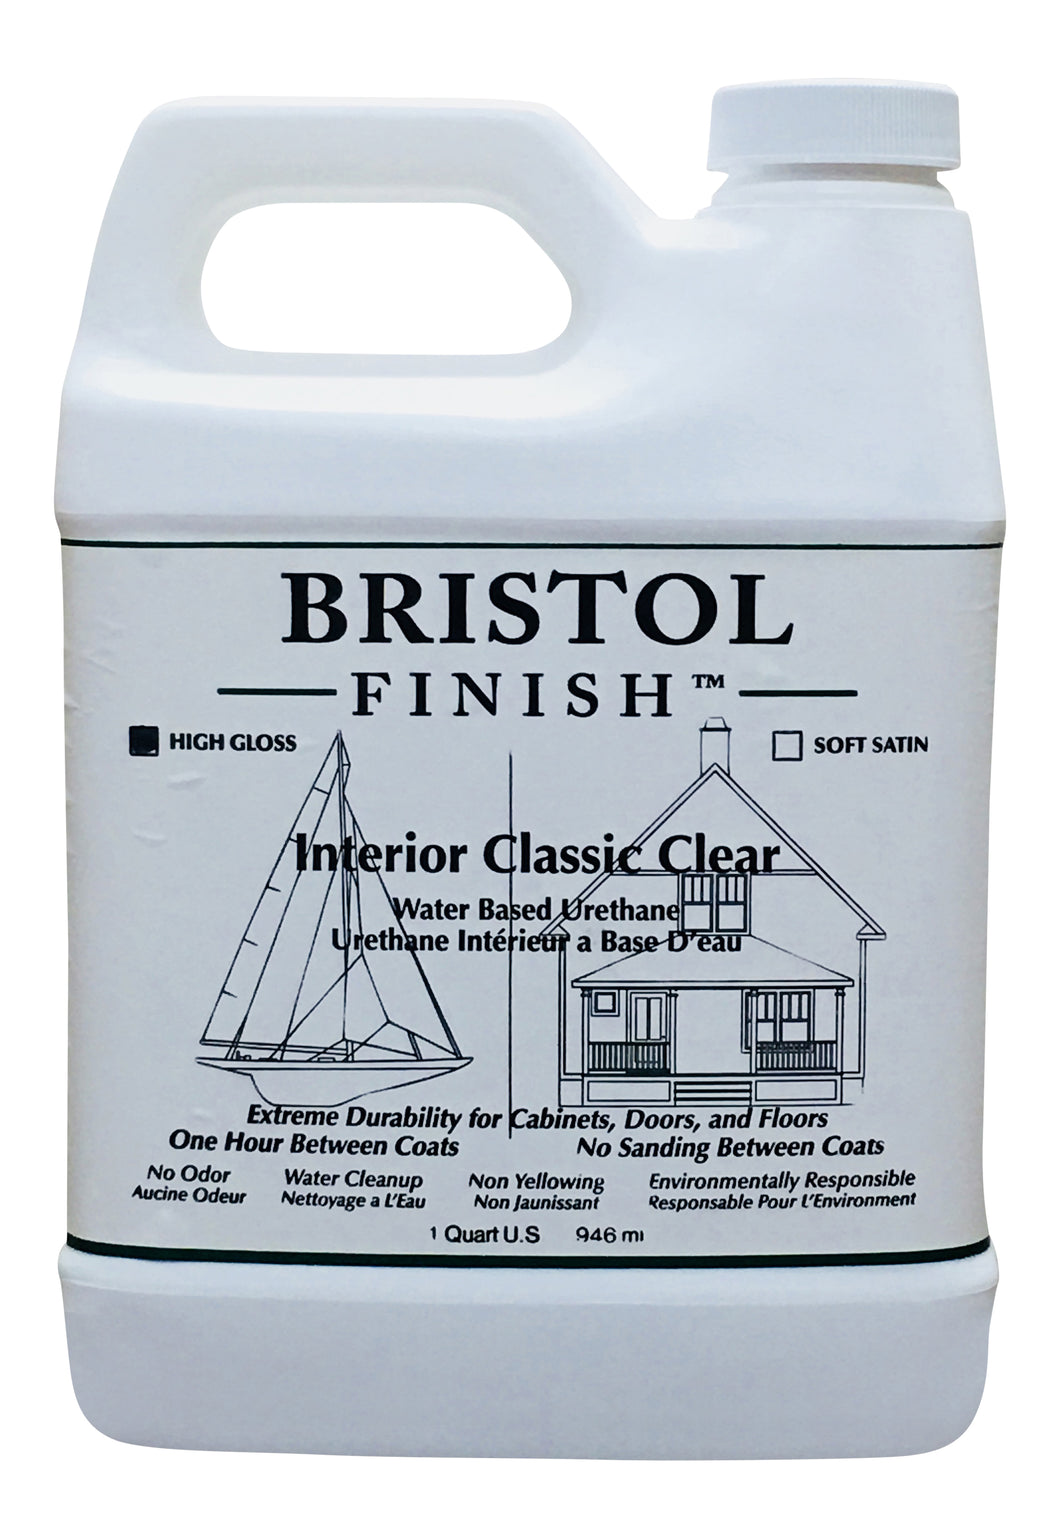 Bristol Finish Interior Classic Clear Water Based Urethane - High Gloss Finish Quart